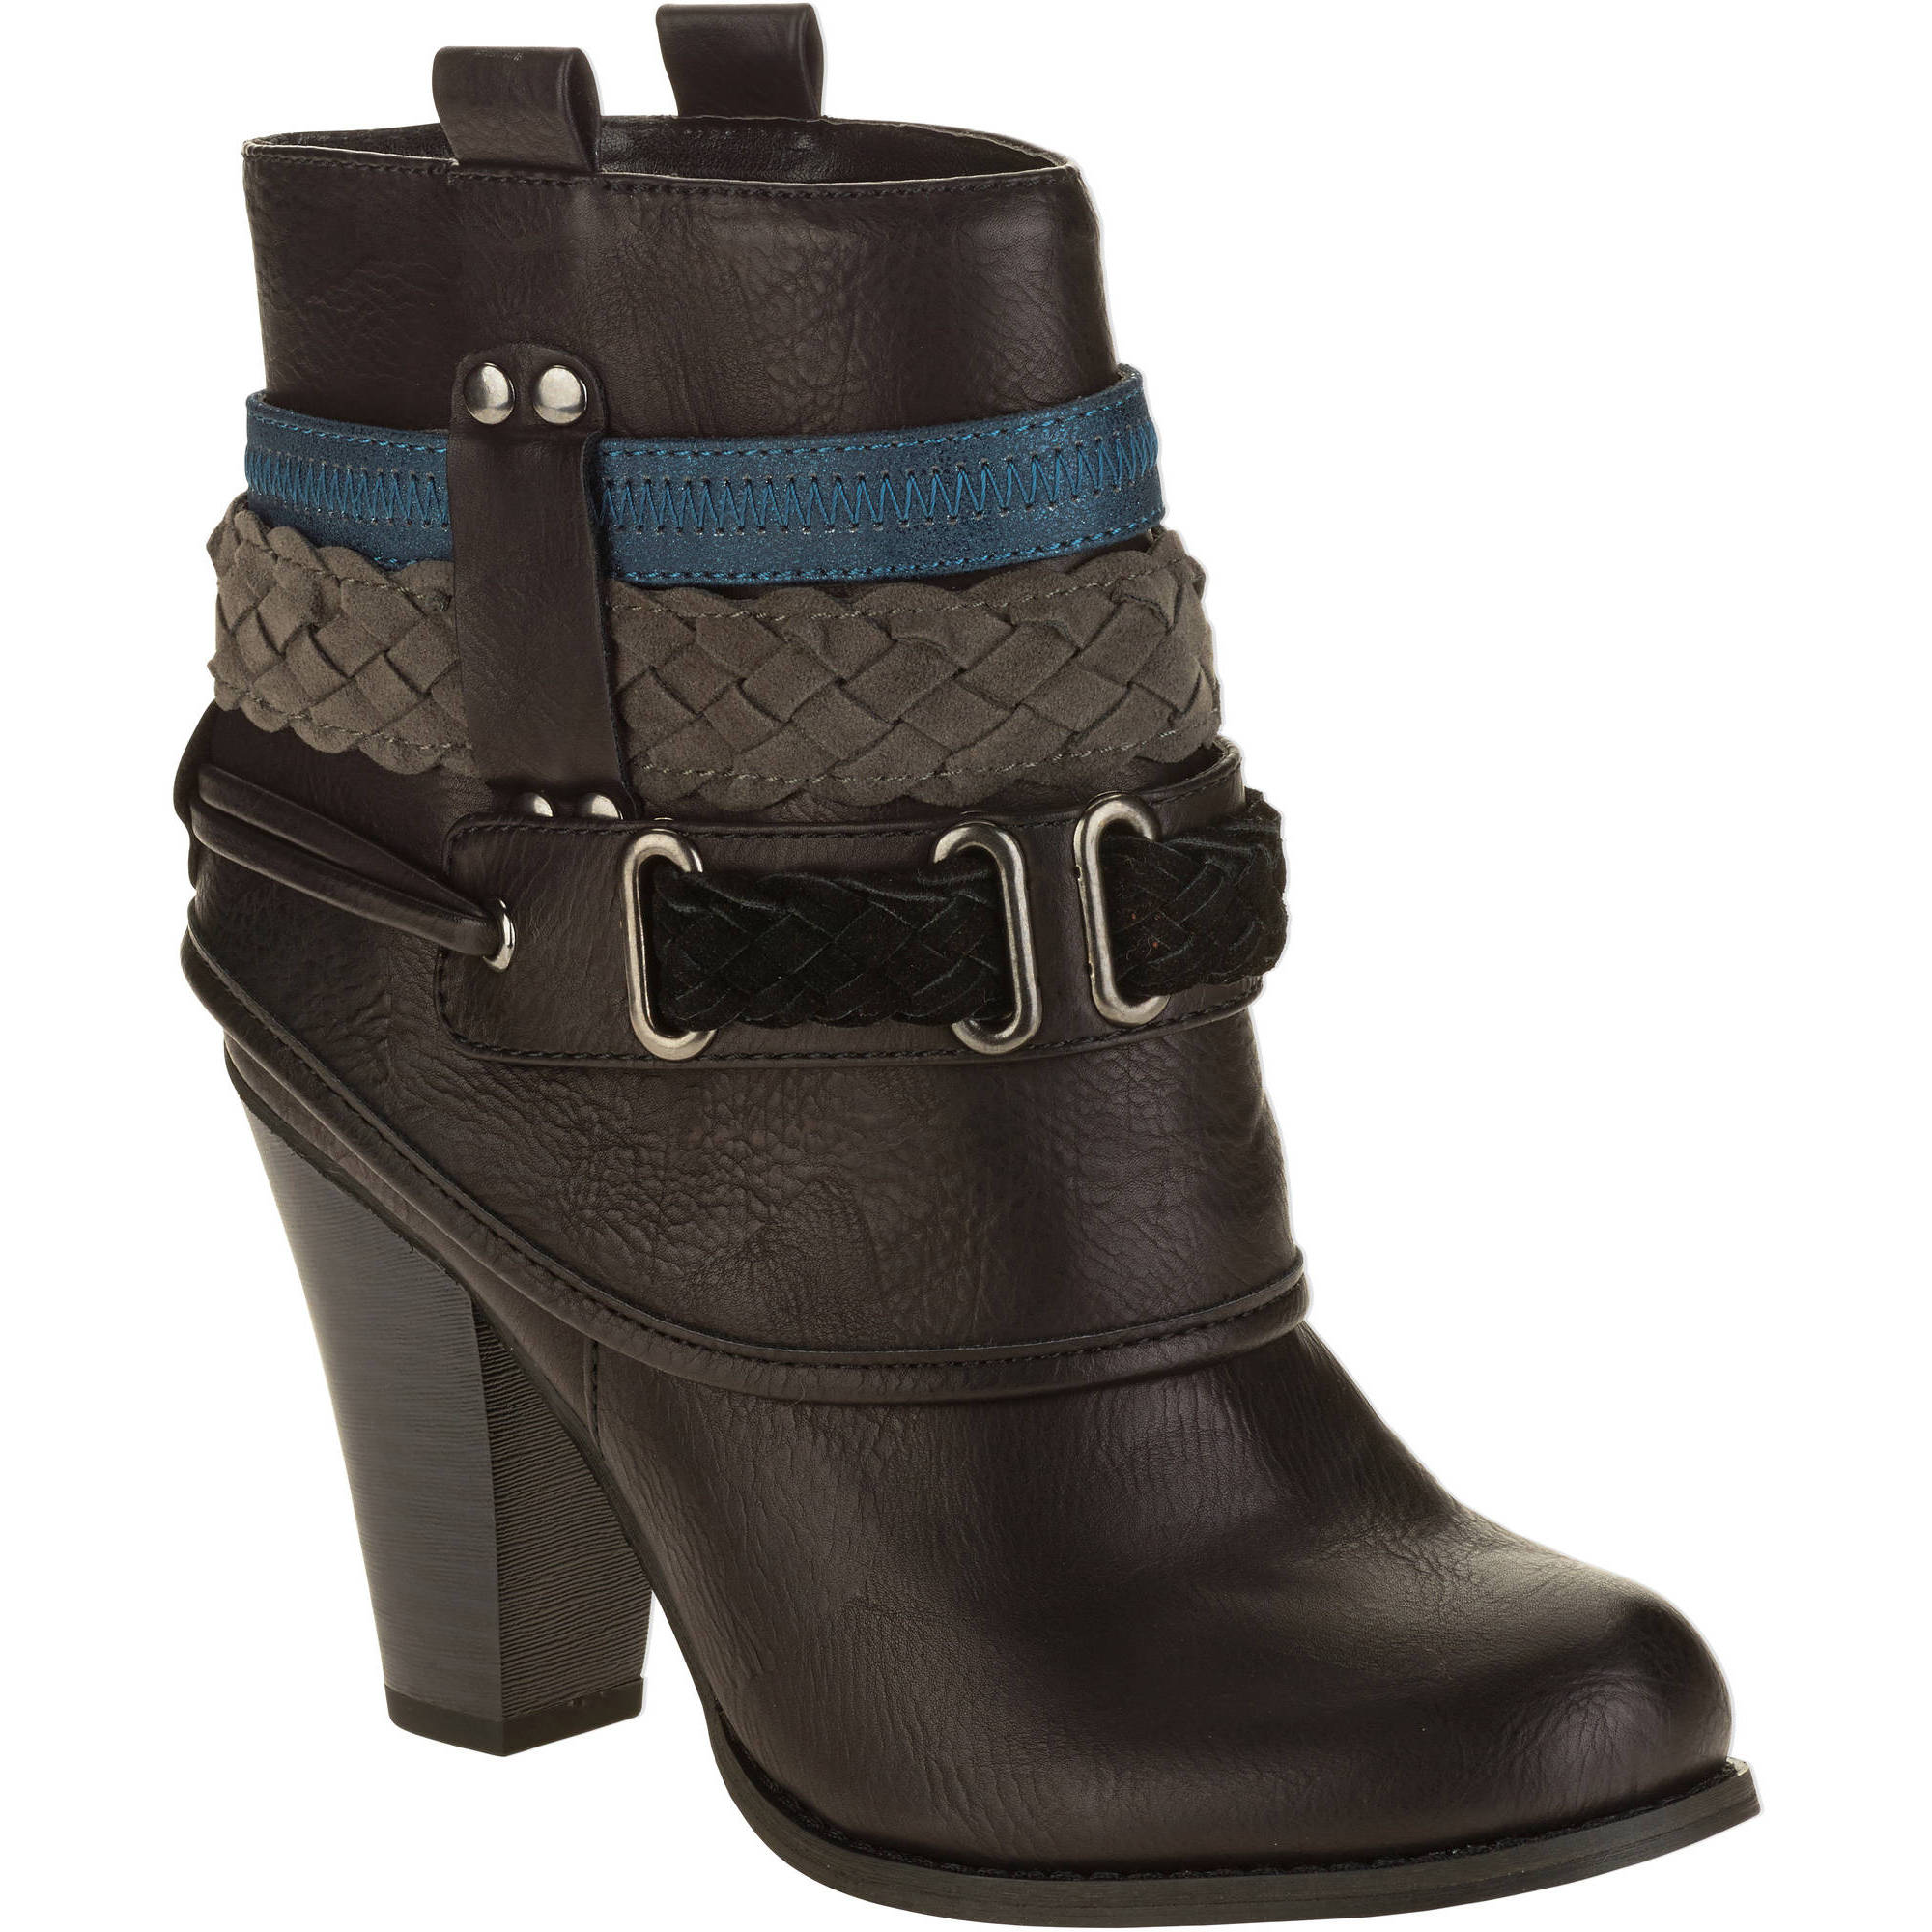 MOMO Women's Heeled Ankle Boot with Interwoven Belt Design